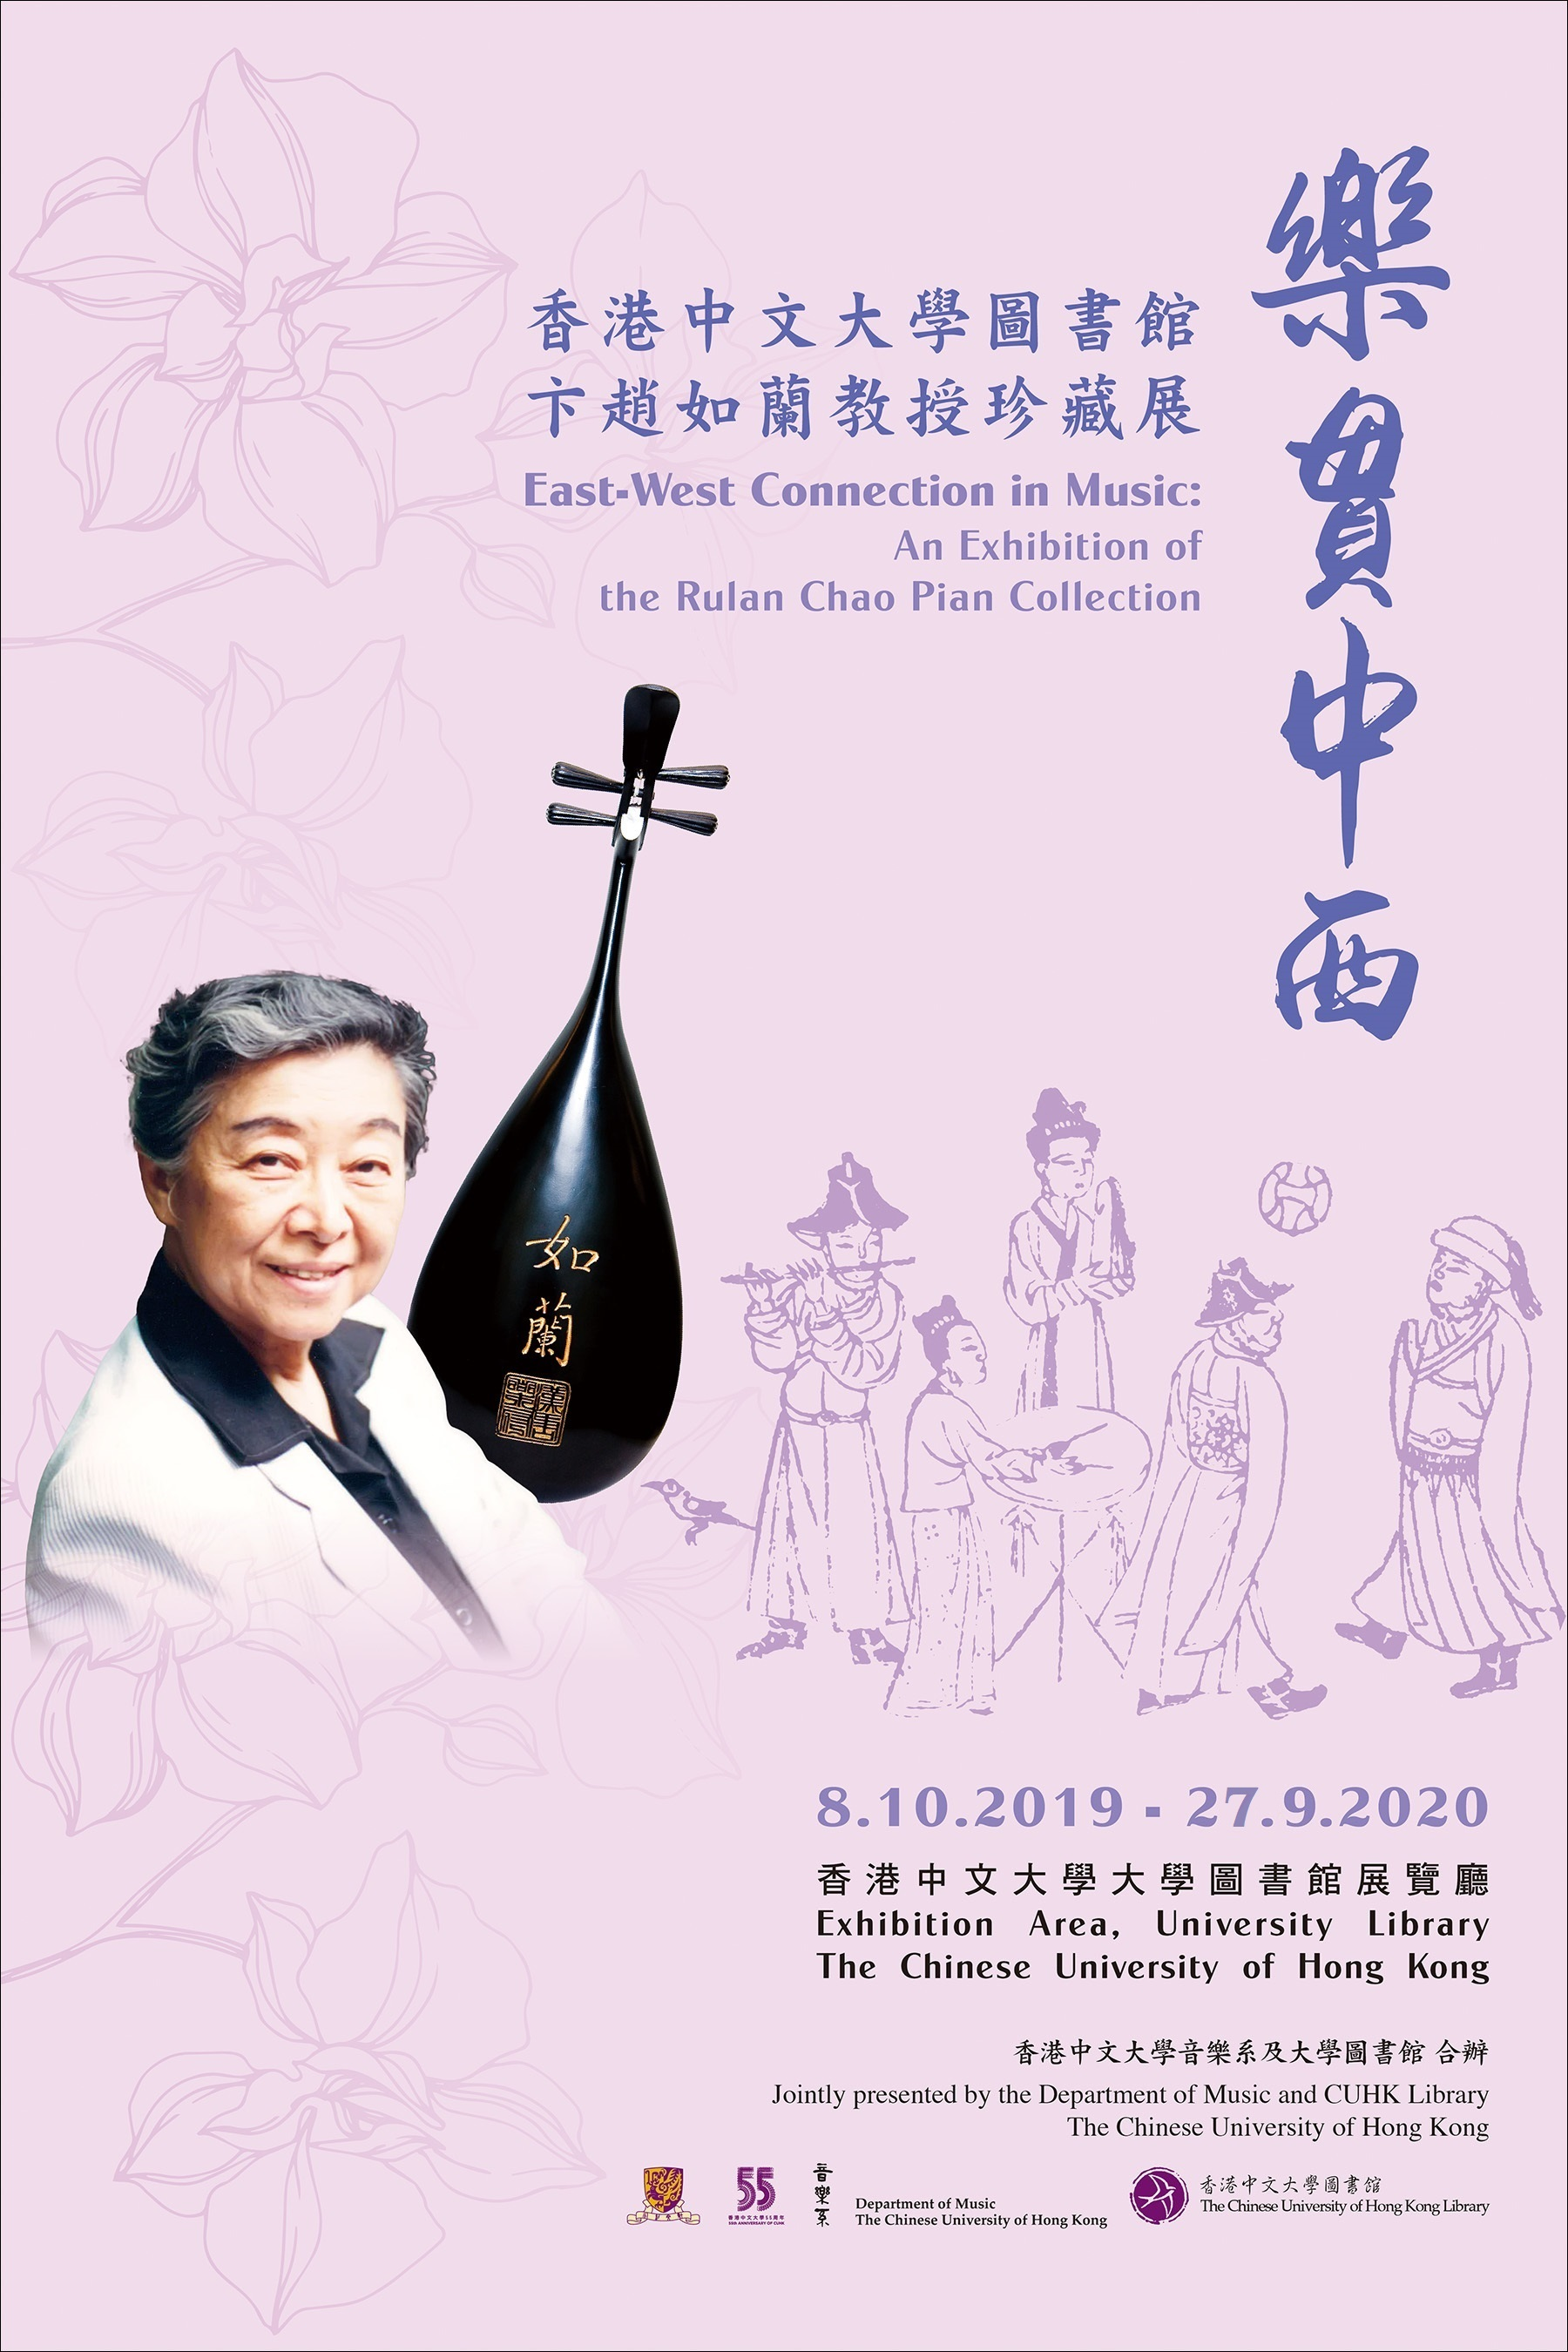 East-West Connection in Music: An Exhibition of the Rulan Chao Pian Collection